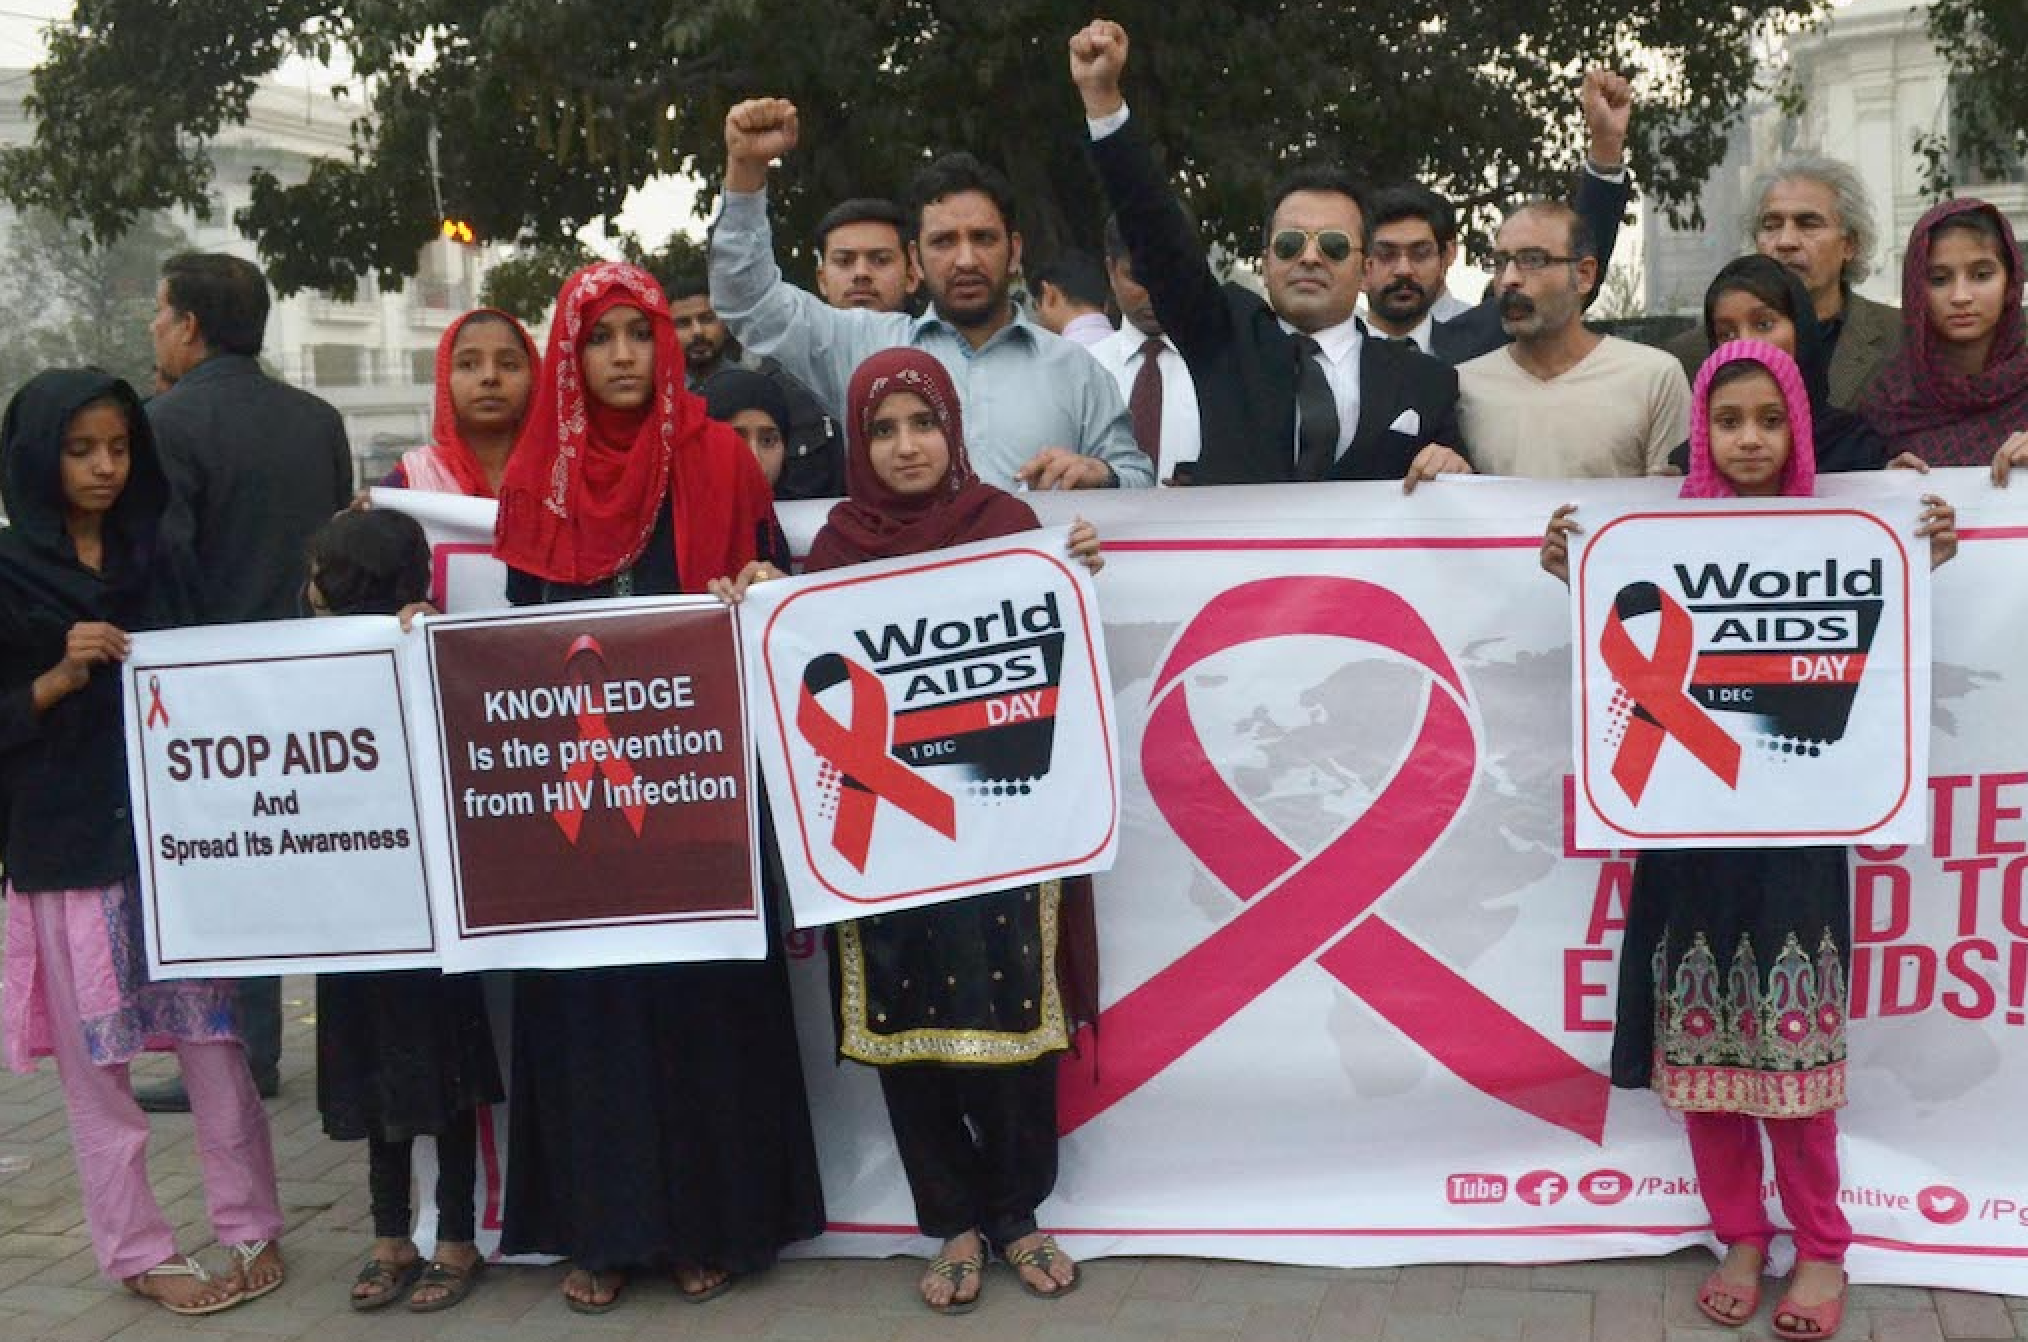 Participants in a walk for awareness about Aids on The Mall on the World AIDS Day | Tariq Mehmood/White Star